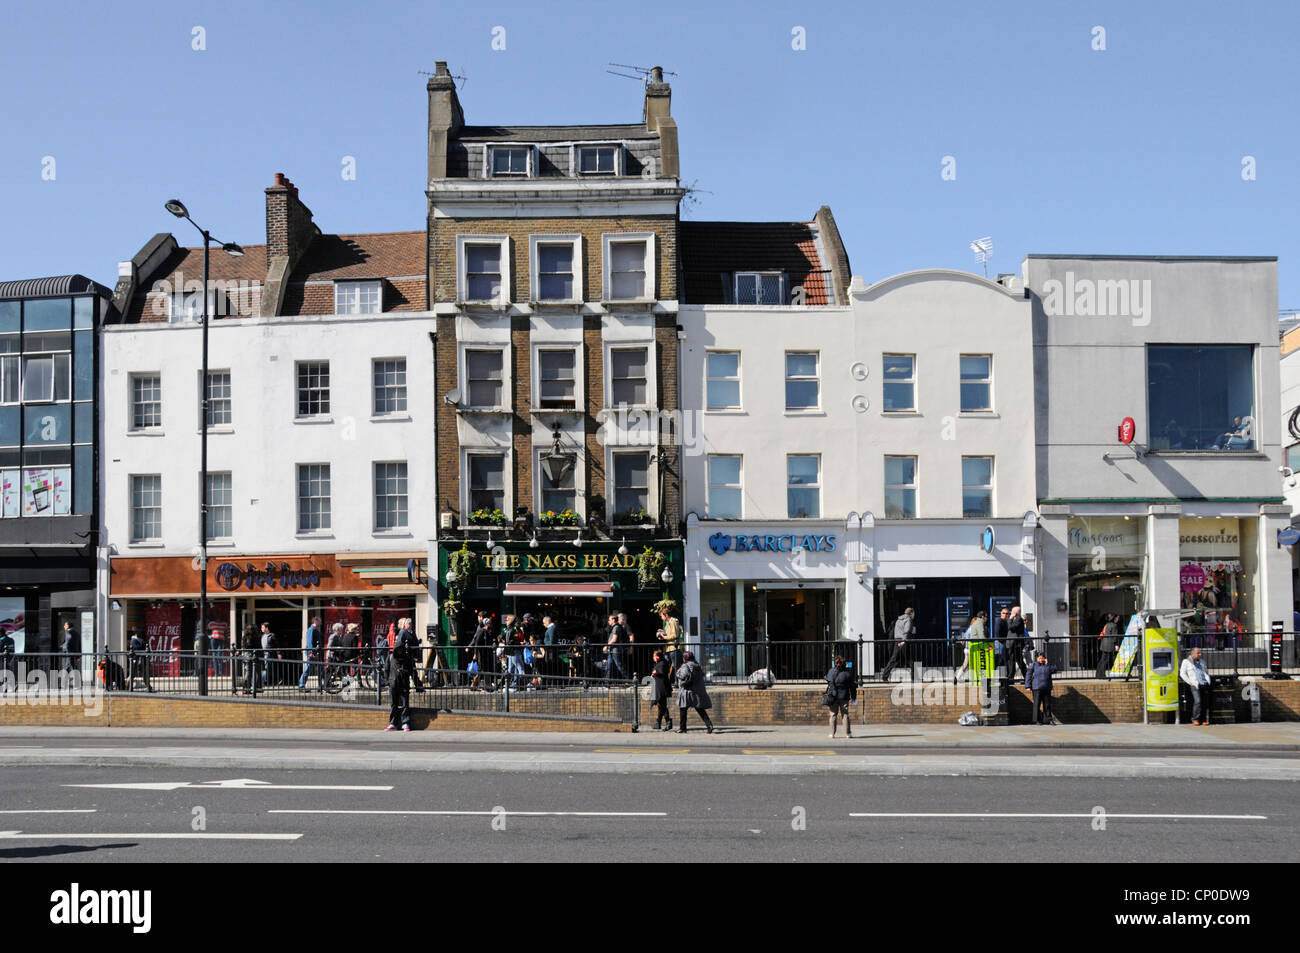 Upper Street shops and business premises including The Nags Head pub - Stock Image